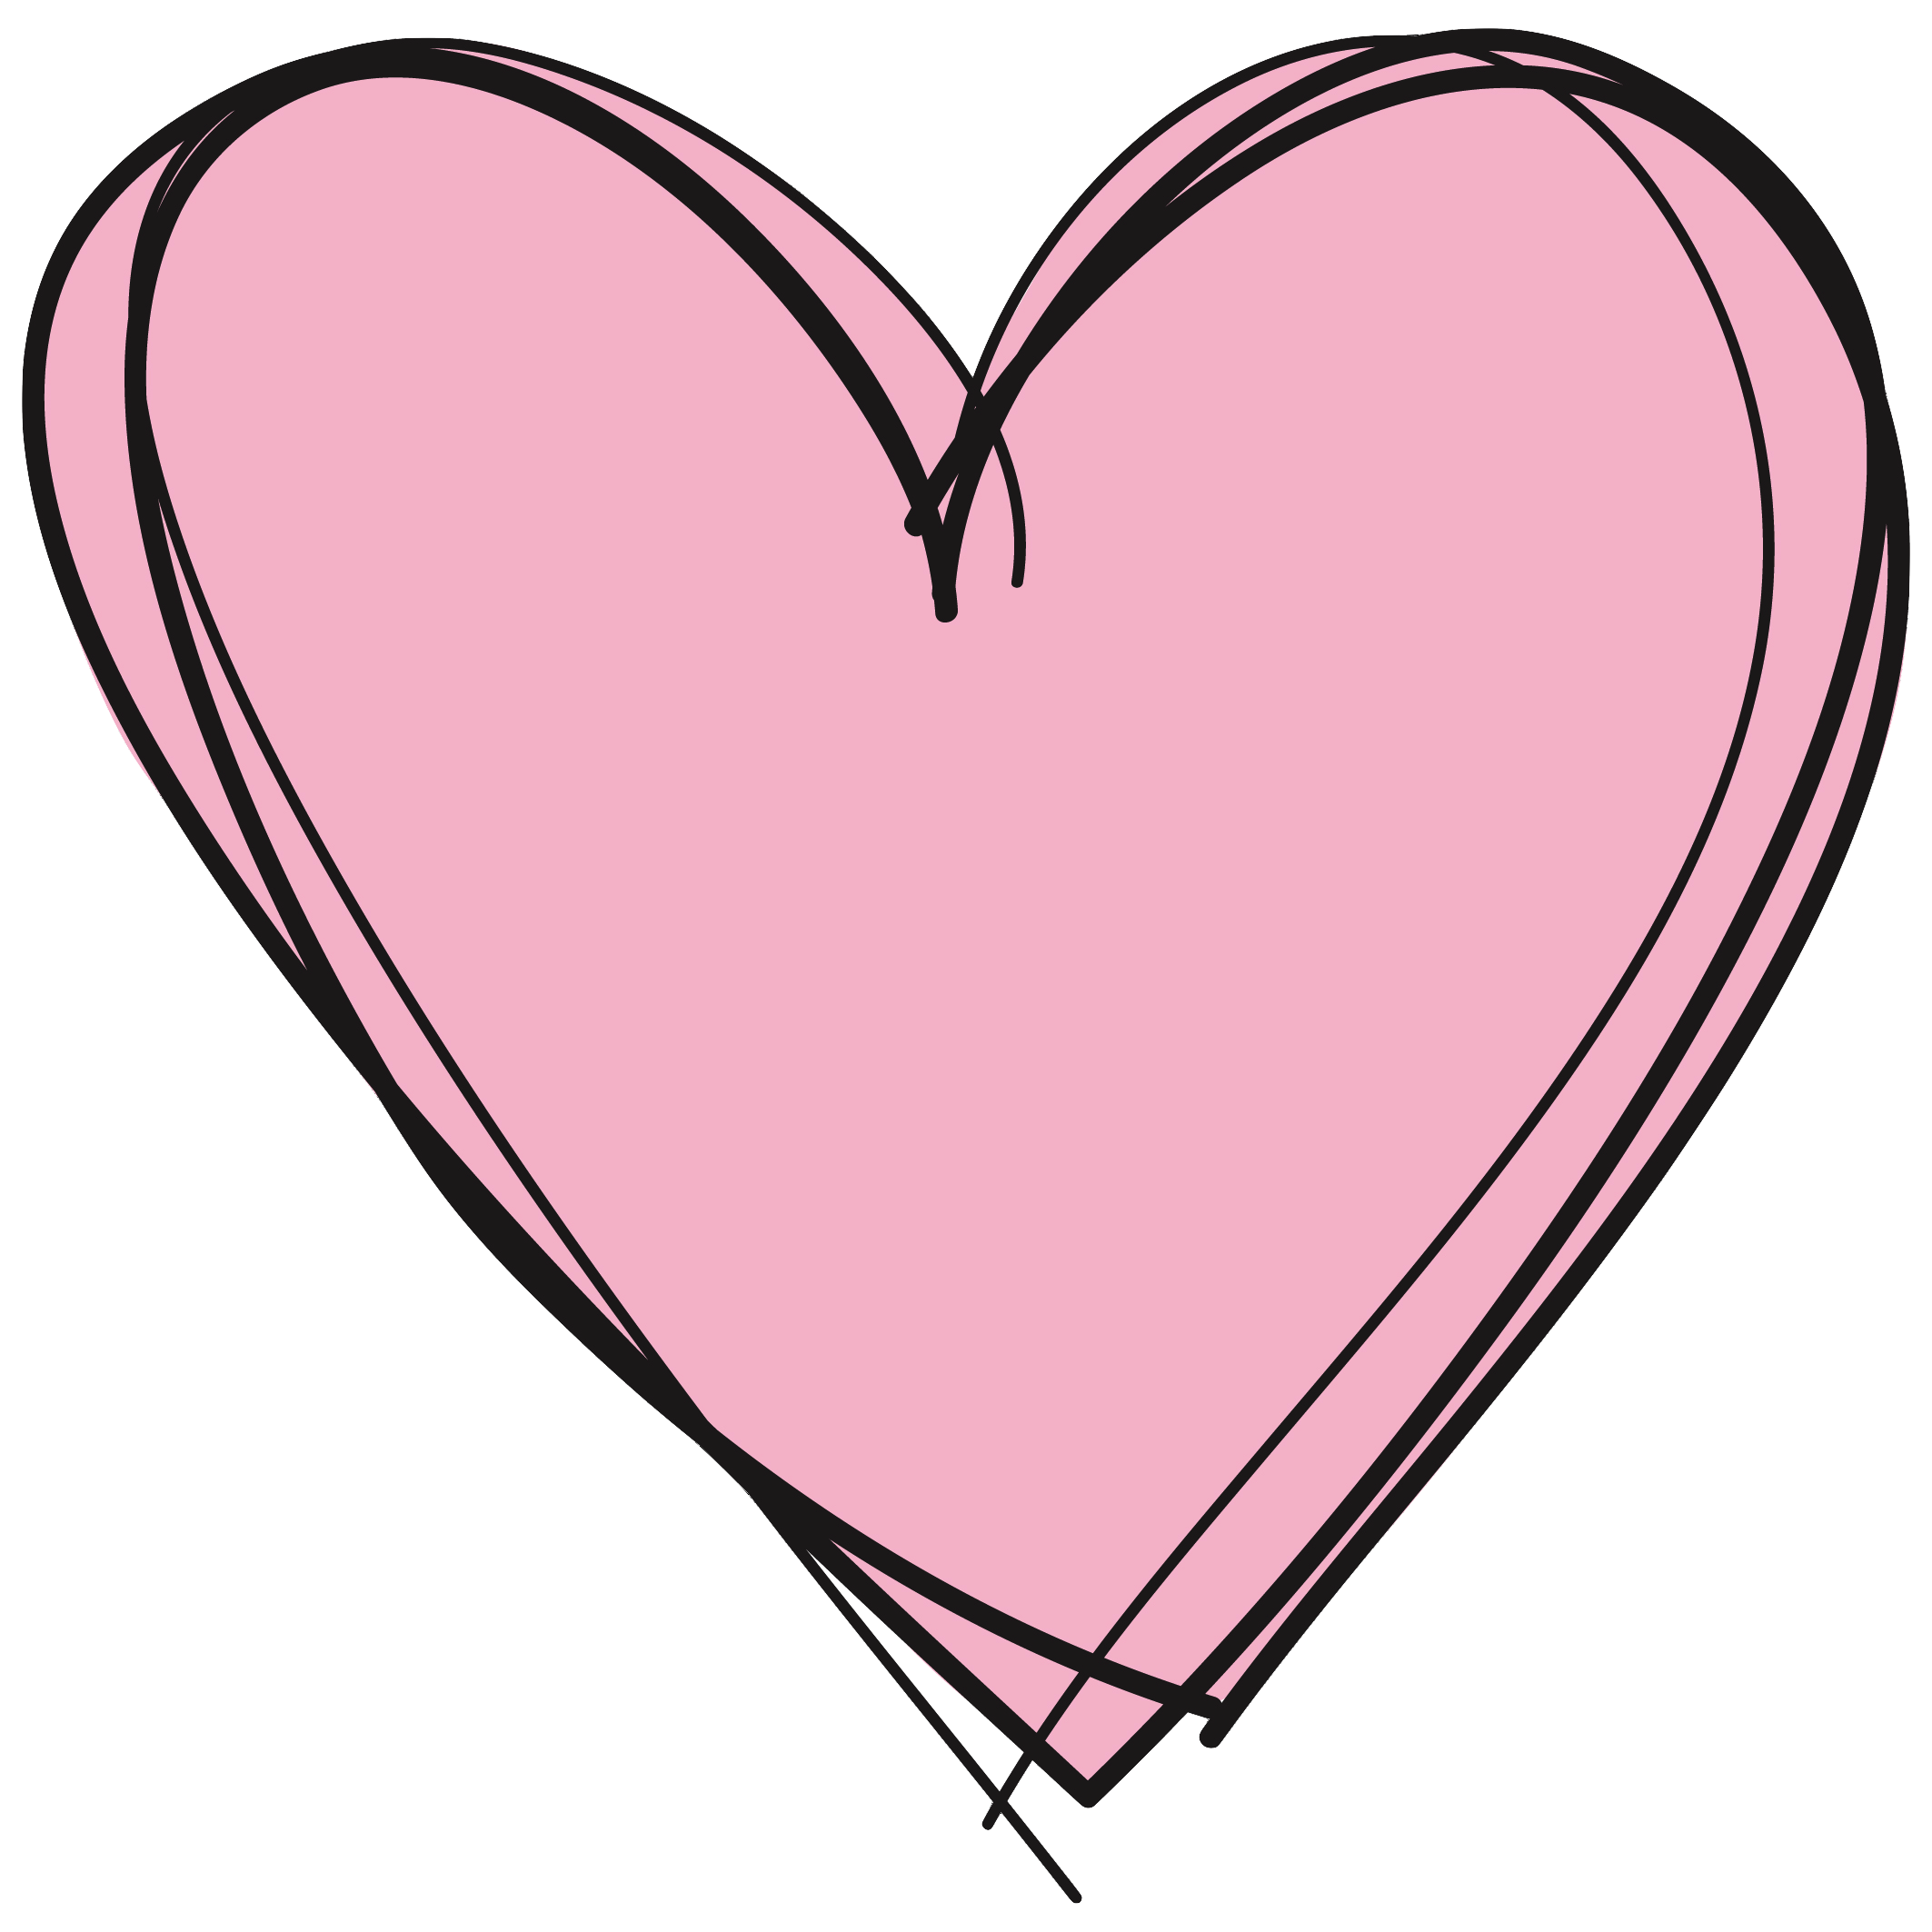 Ufo clipart transparent tumblr. Hearts in a row